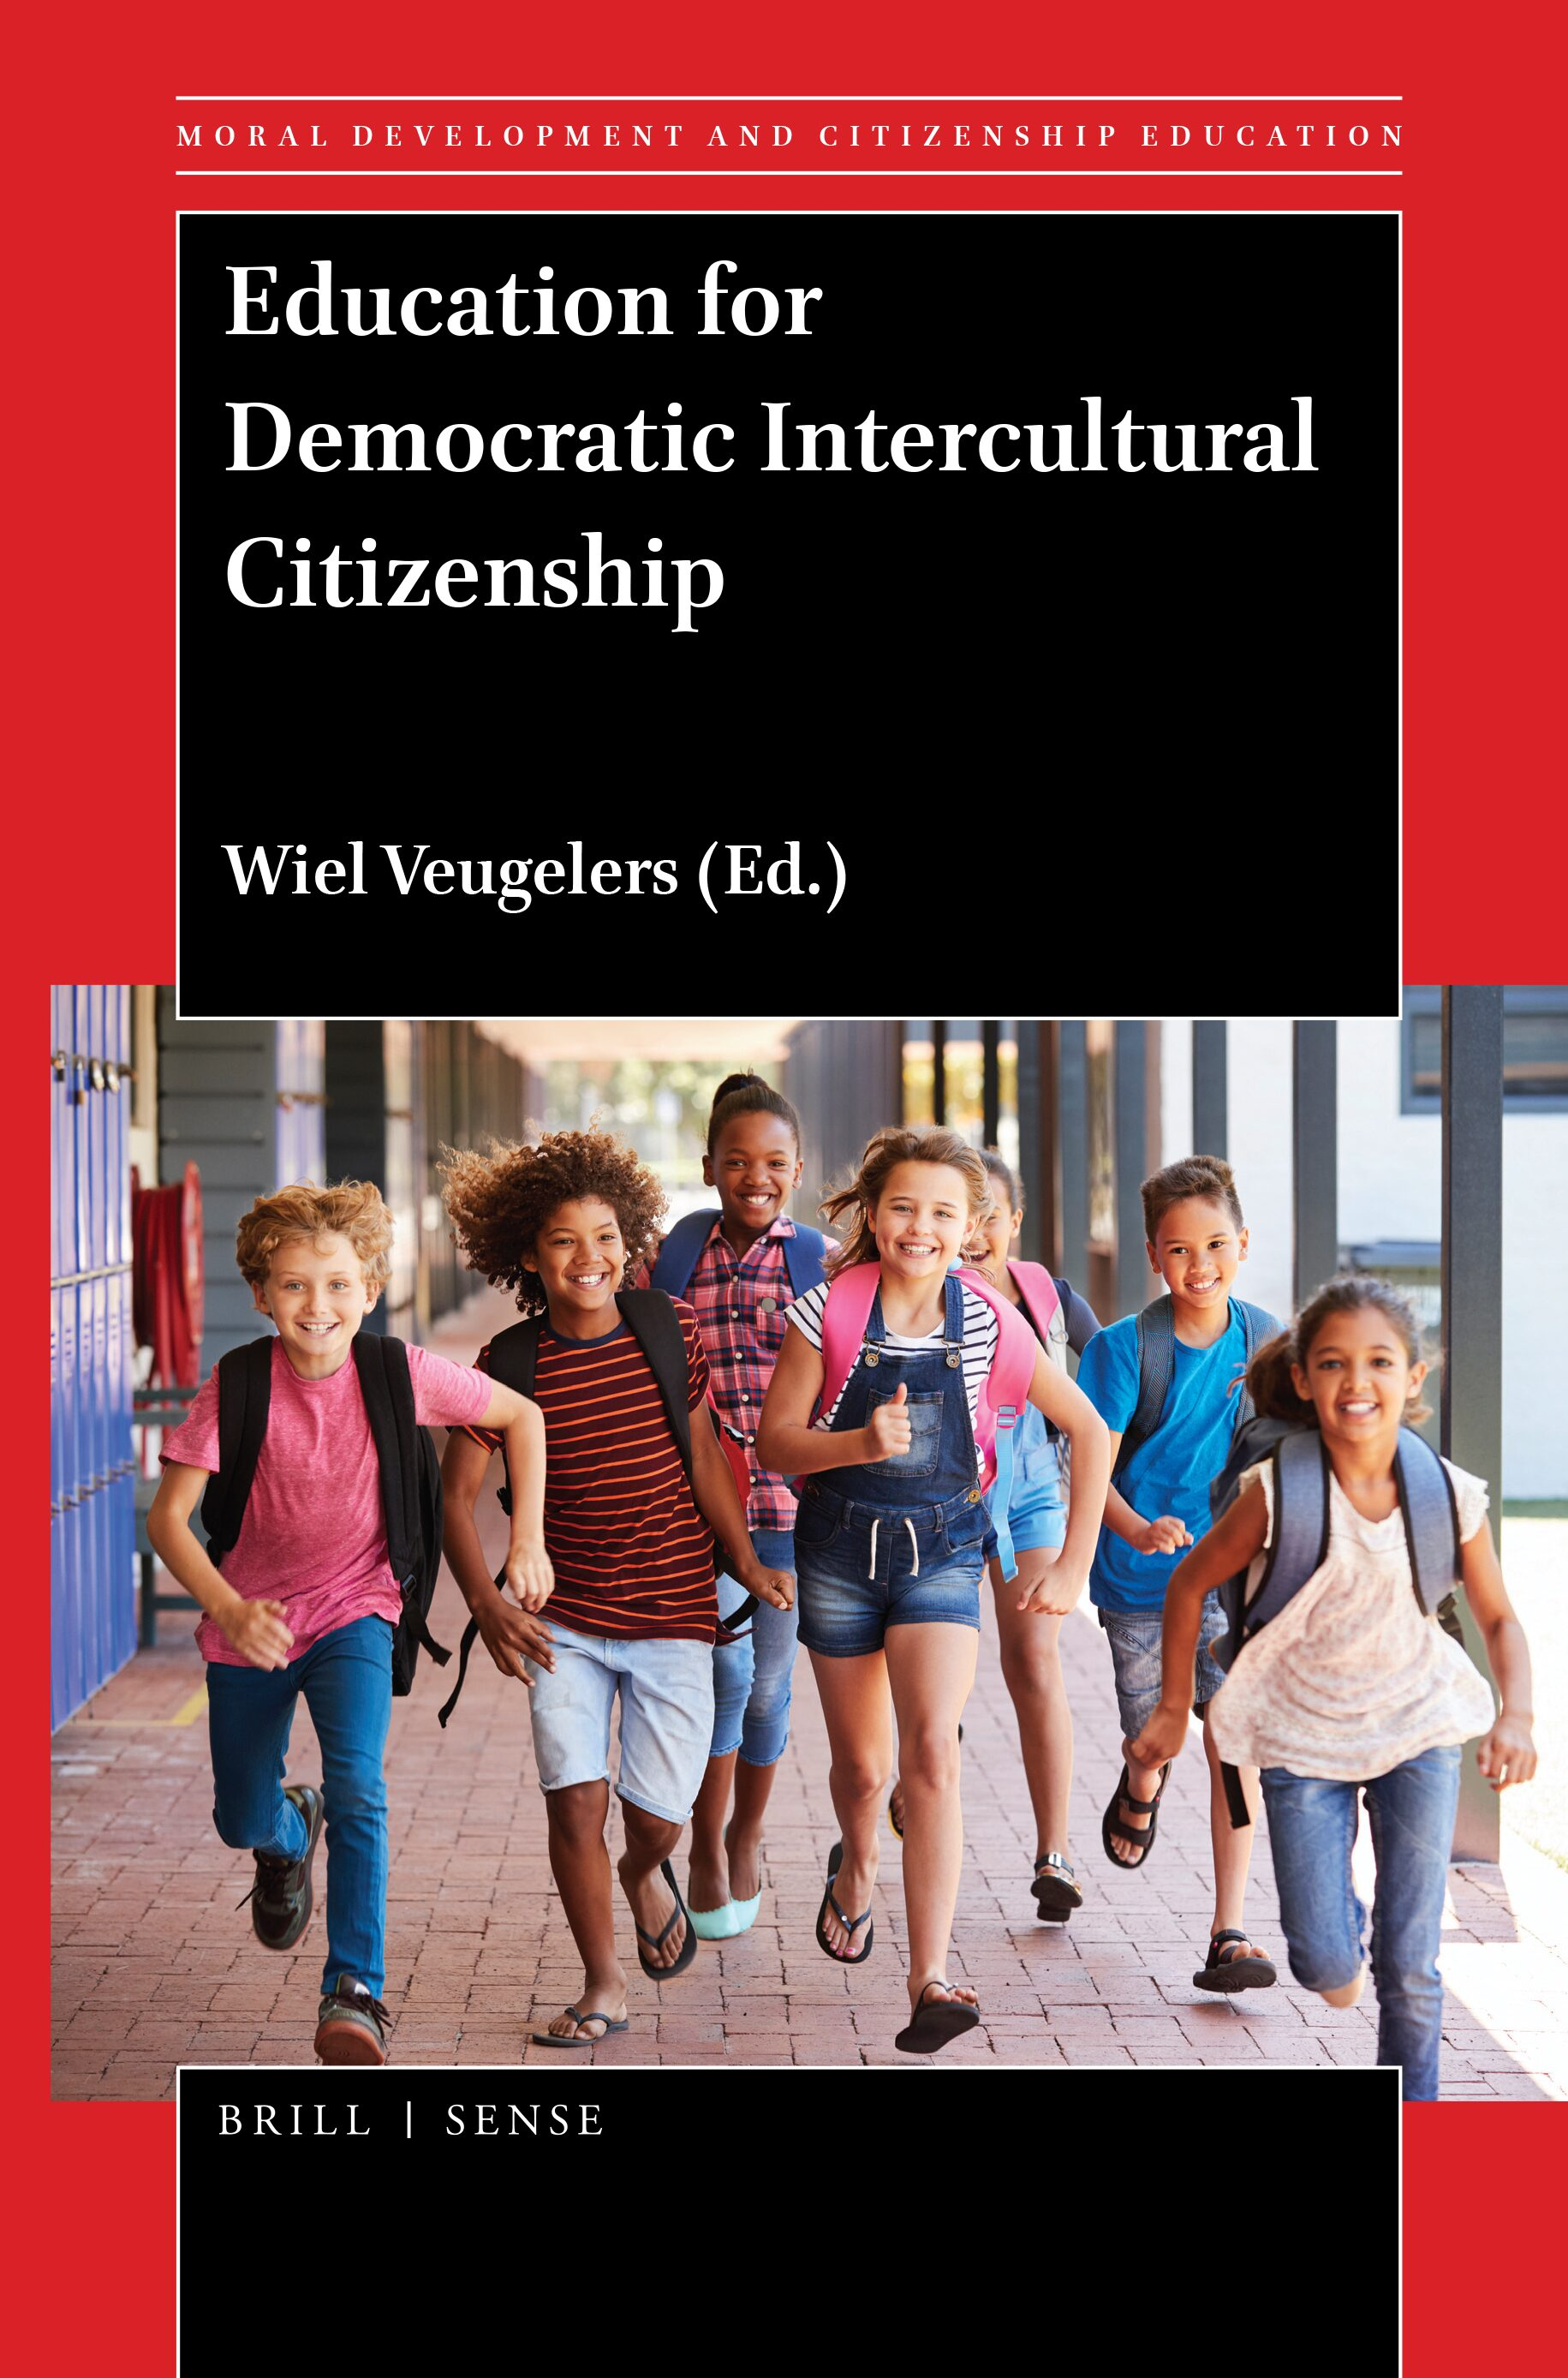 Theory And Practice Of Citizenship Education In Education For